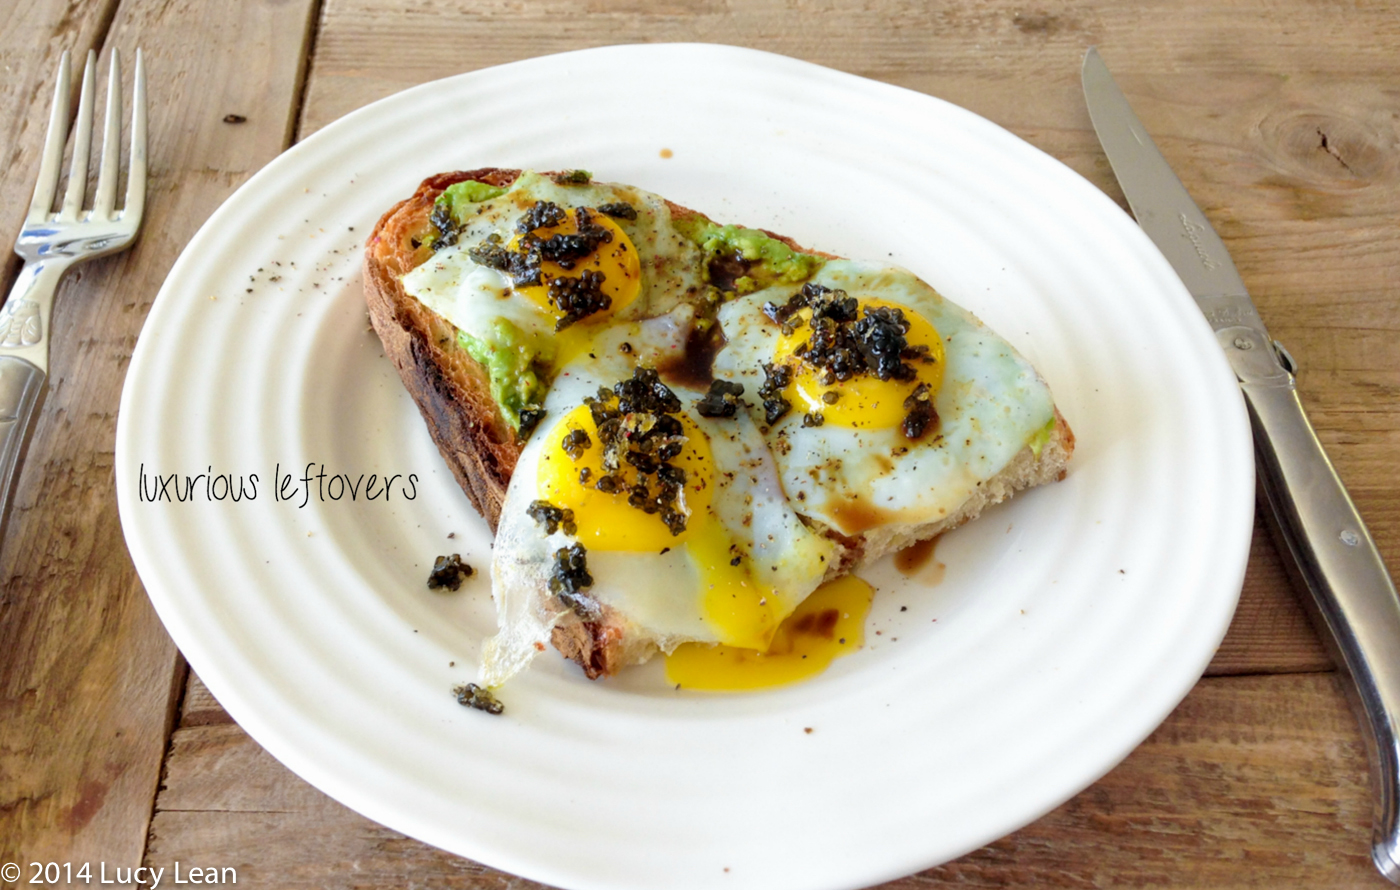 quails eggs and caviar on avocado toast